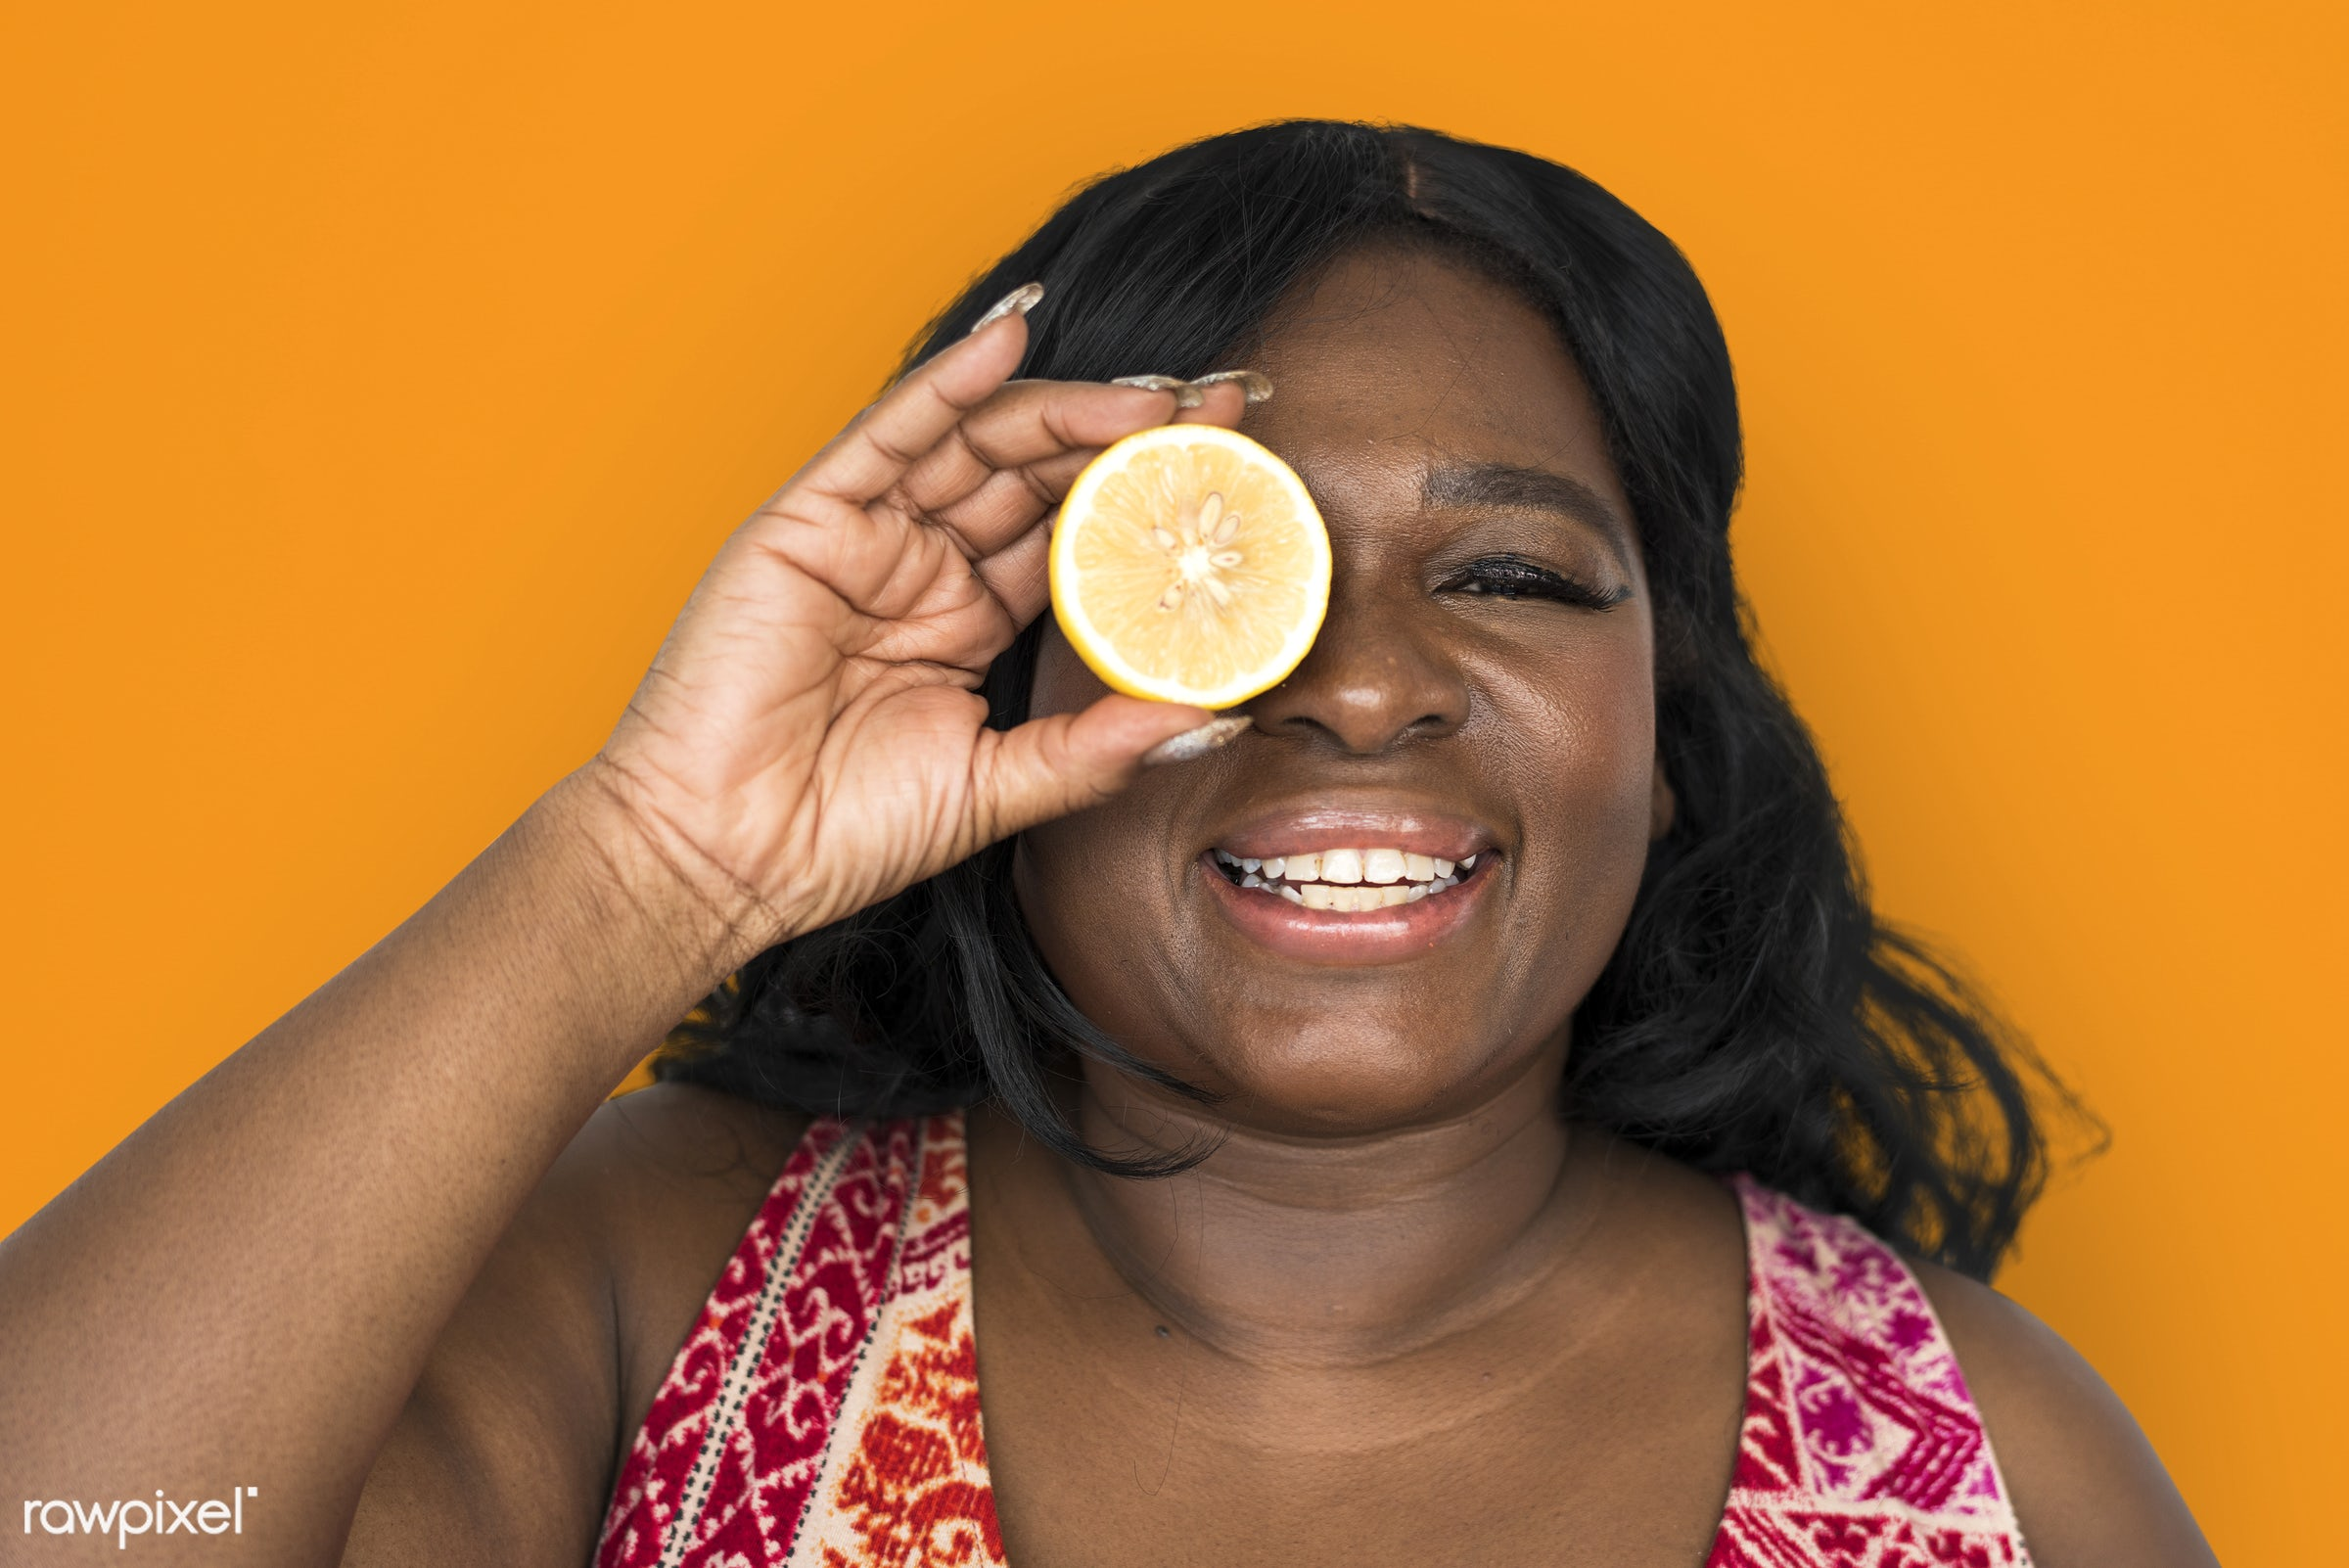 studio, expression, person, people, eyes, cover, woman, cheerful, smiling, black, orange, isolated, fruit, african descent,...